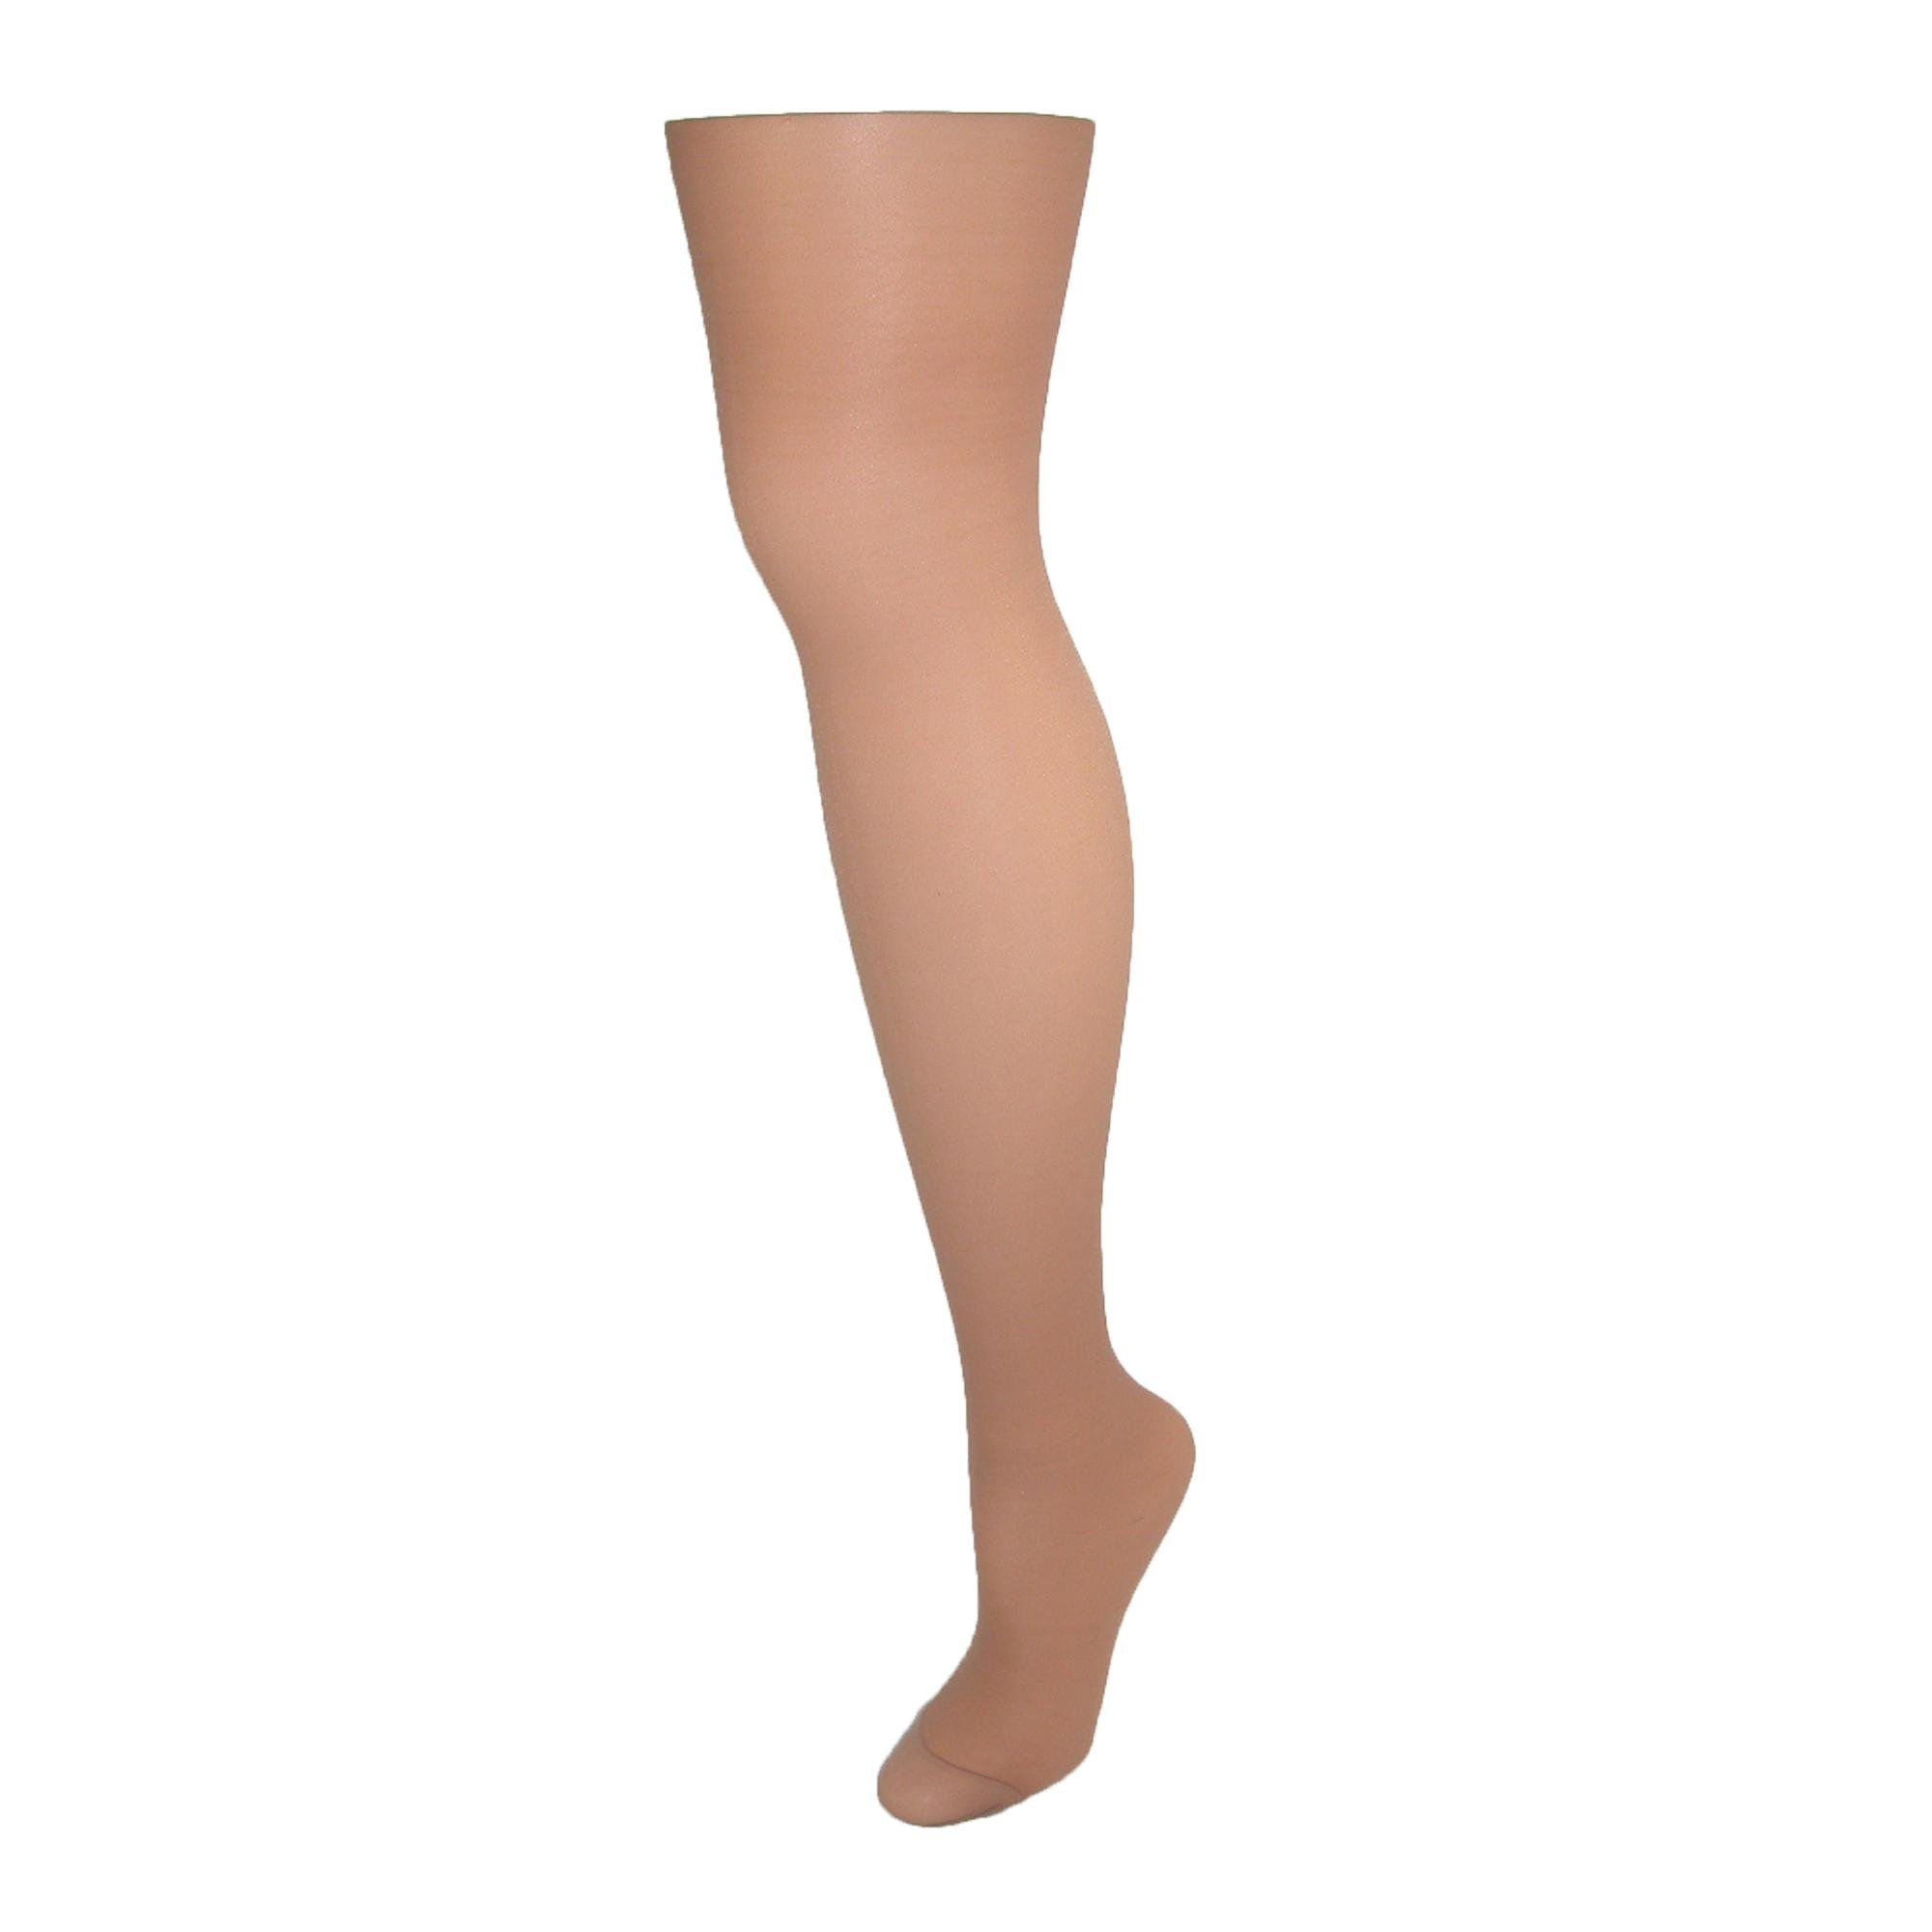 Hanes Alive Womens Nylon Full Support Reinforced Toe Sheer Pantyhose (Pack of 3), A, Little Color